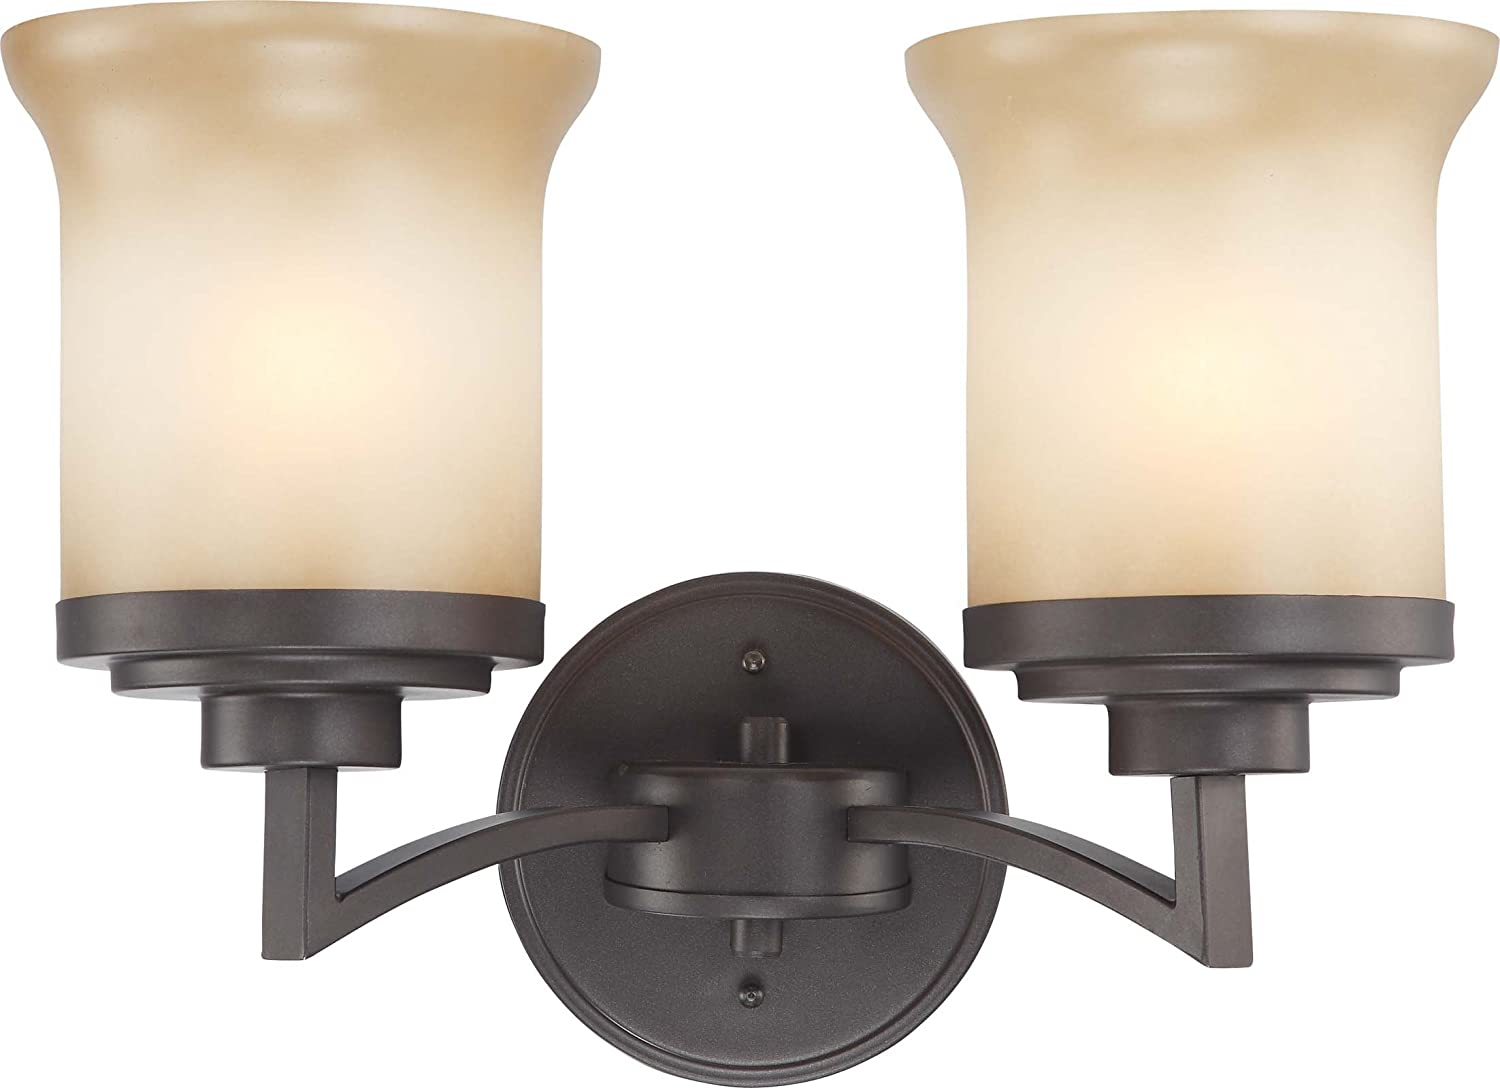 Nuvo lighting 604104 three light harmony chandelier with satin nuvo lighting 604104 three light harmony chandelier with satin glass brushed nickel kitchen chandelier amazon arubaitofo Choice Image